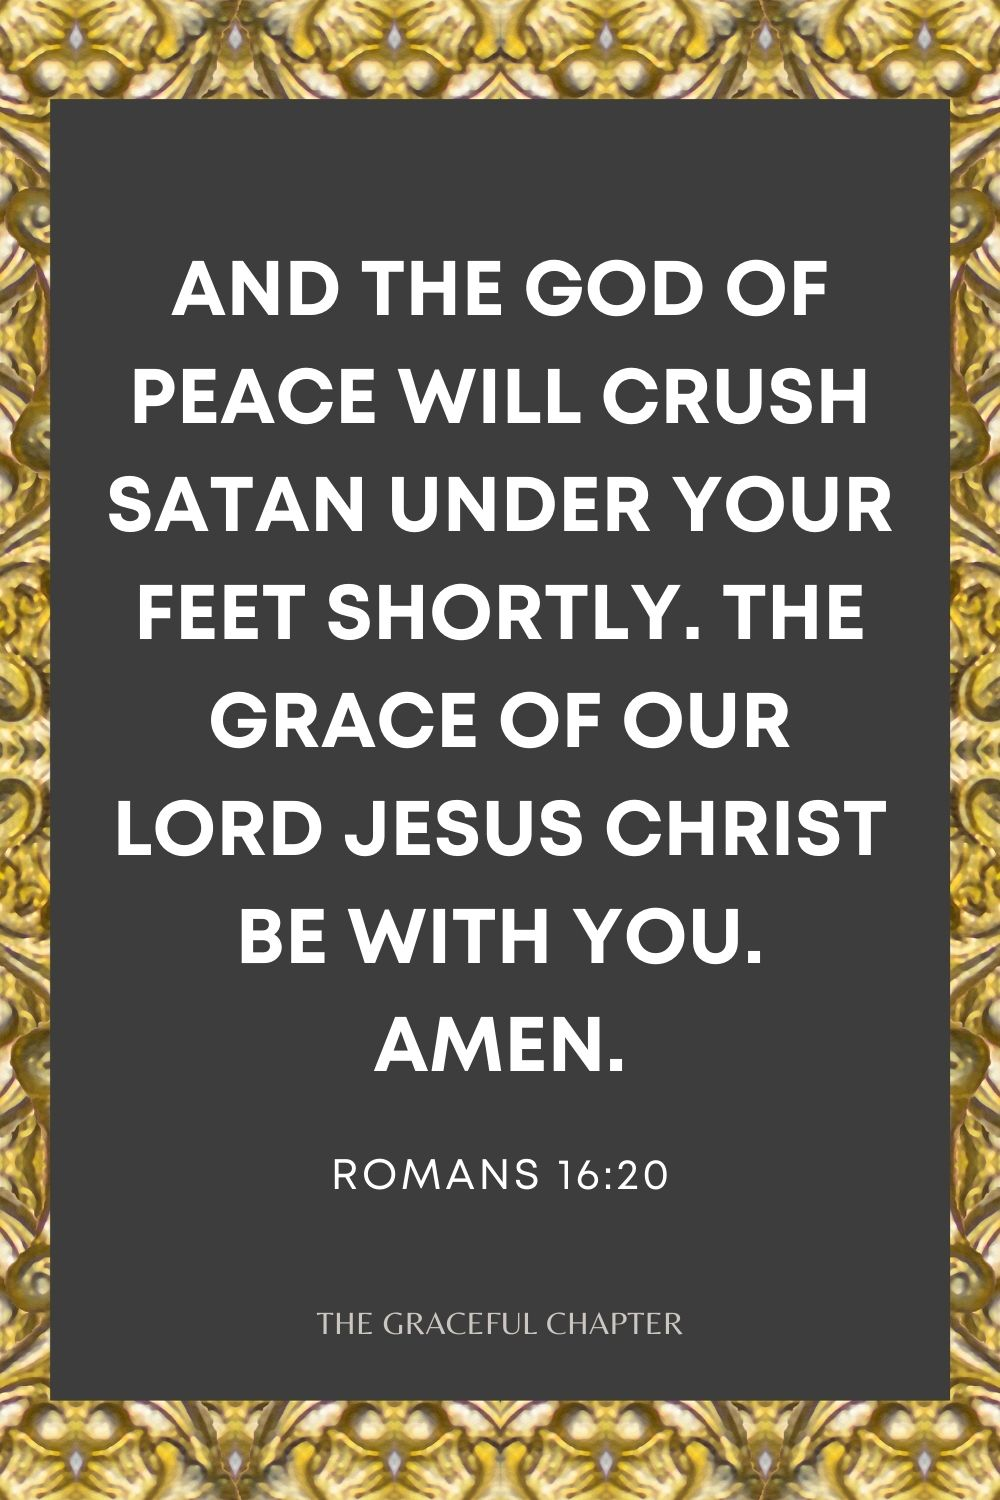 And the God of peace will crush Satan under your feet shortly. The grace of our Lord Jesus Christ be with you. Amen. Romans 16:20